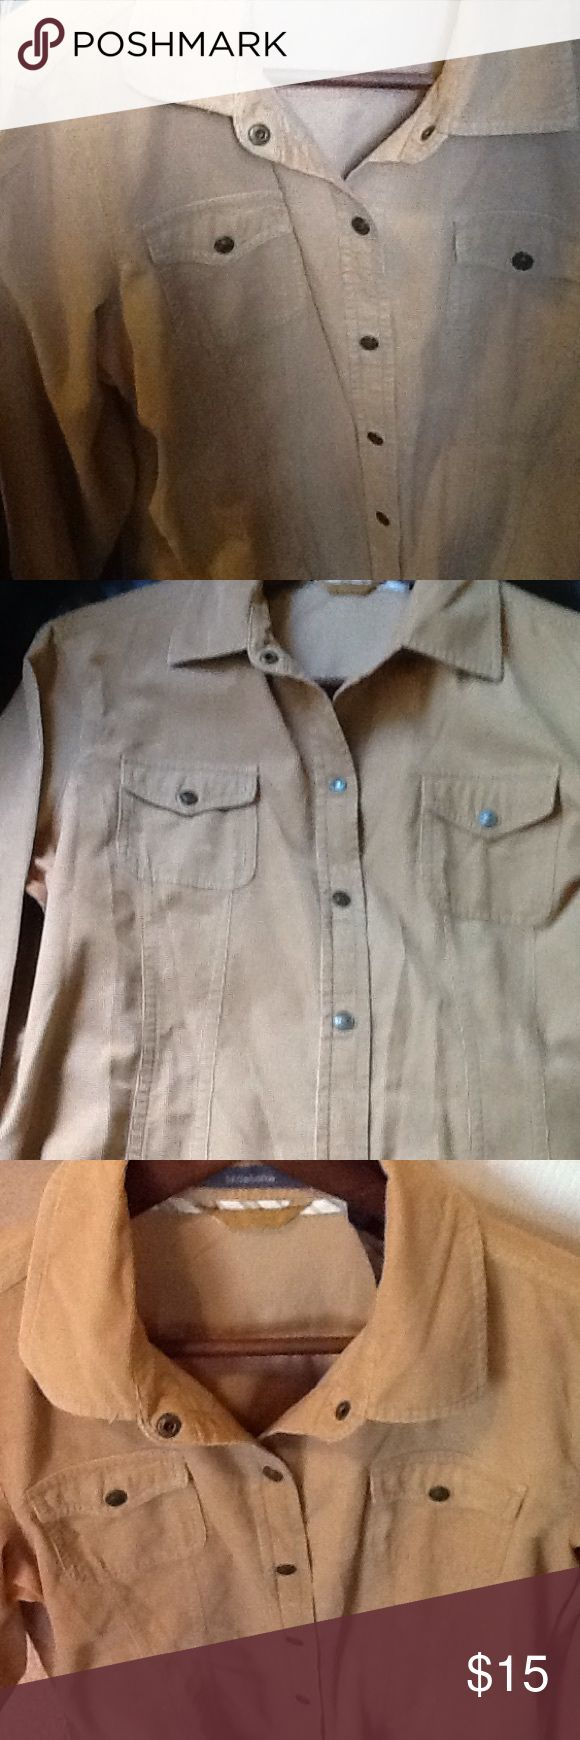 Corduroy shirt. Weekend Sale! Great for the cool weather corduroy shirt. Long sleeve spread collar snap button front with dart shape bodice Tan color Liz Claiborne Tops Button Down Shirts